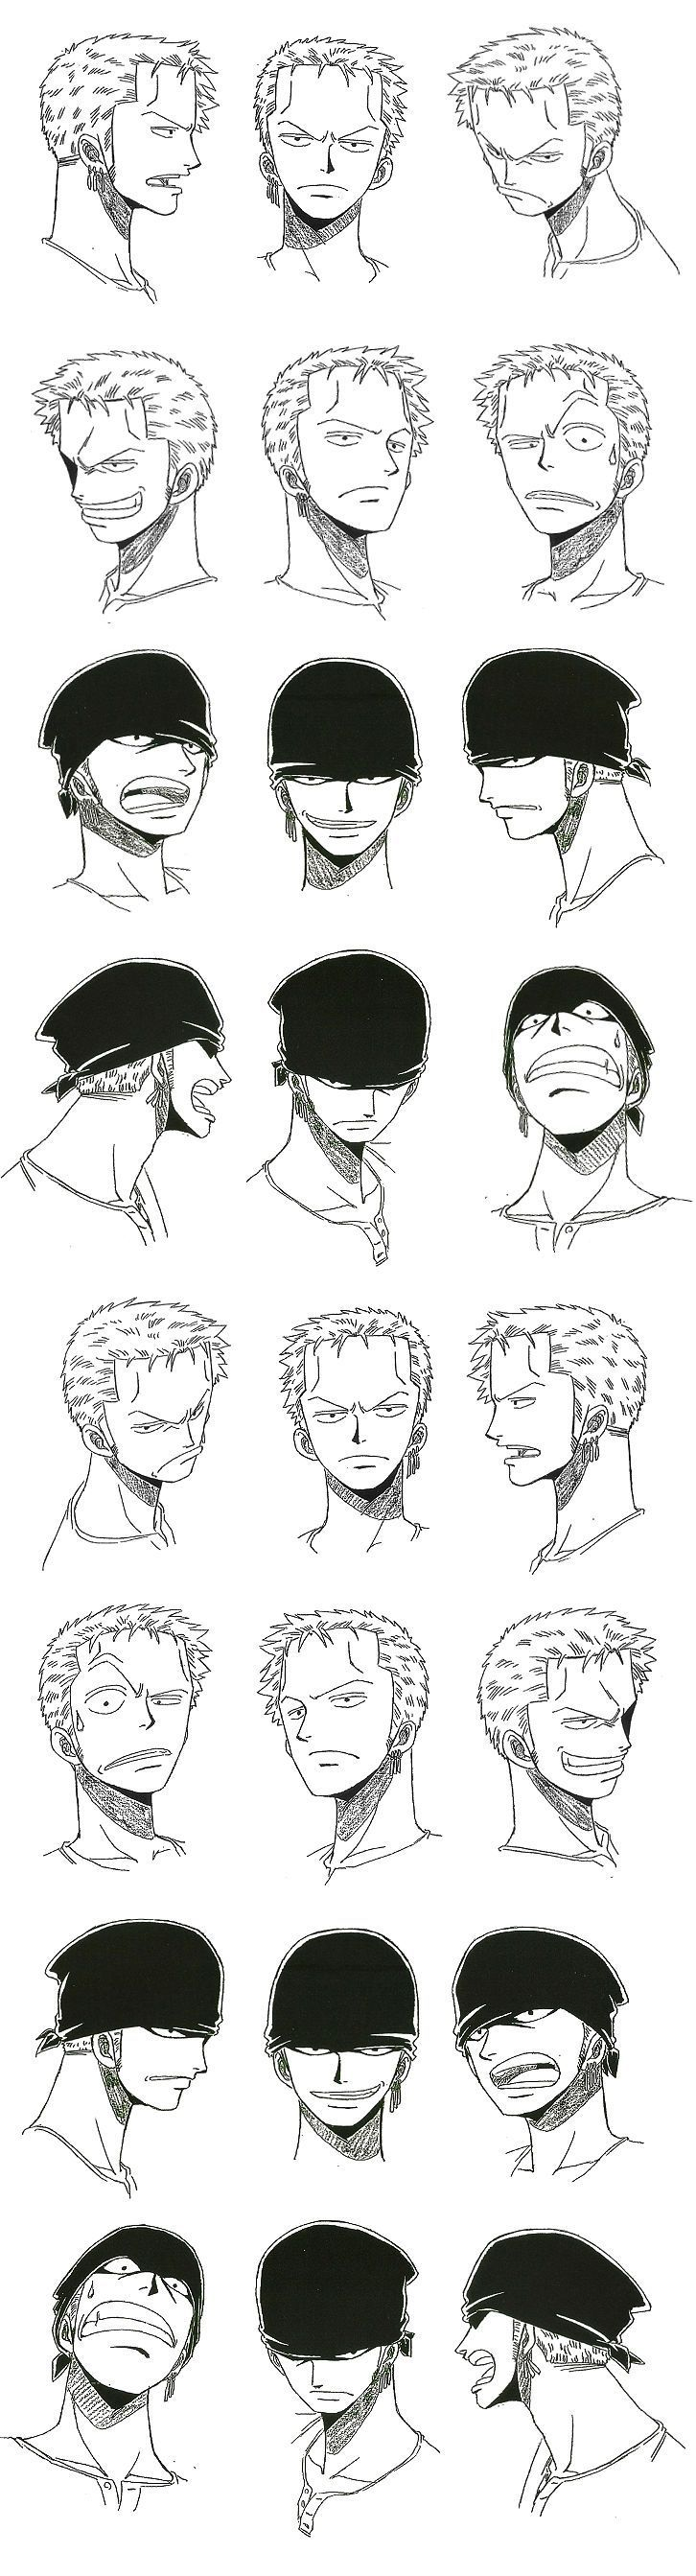 Roronoa Zolo / Roronoa Zoro model sheet, Character design, Official Reference, Settei* --- Note that his earrings are on his left ear, viewer's right